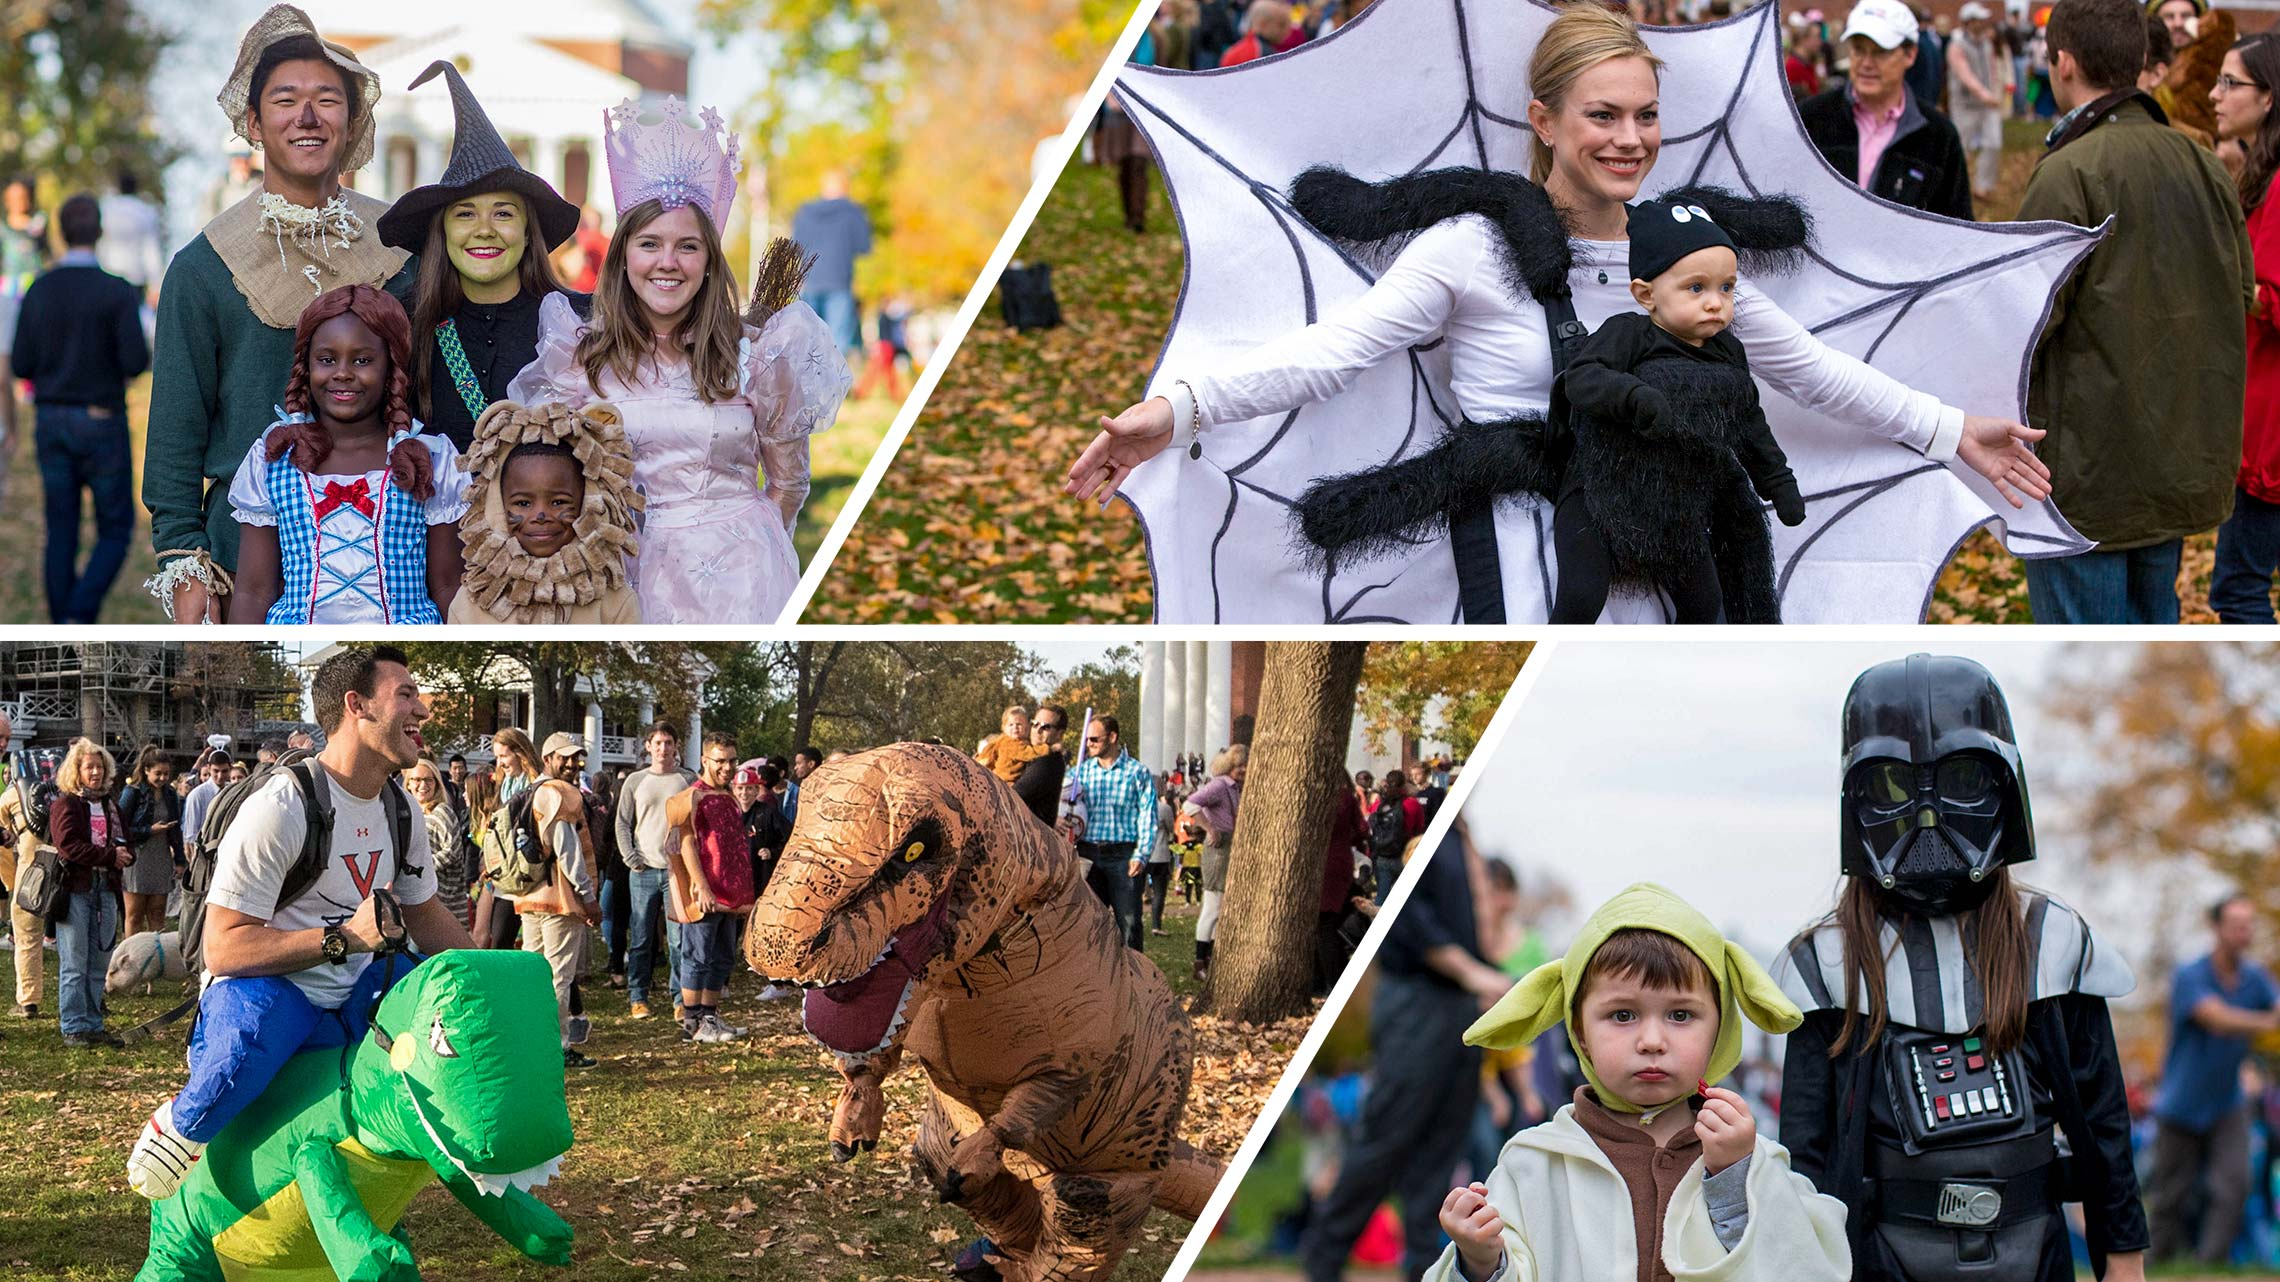 Photos of people in various Halloween costumes